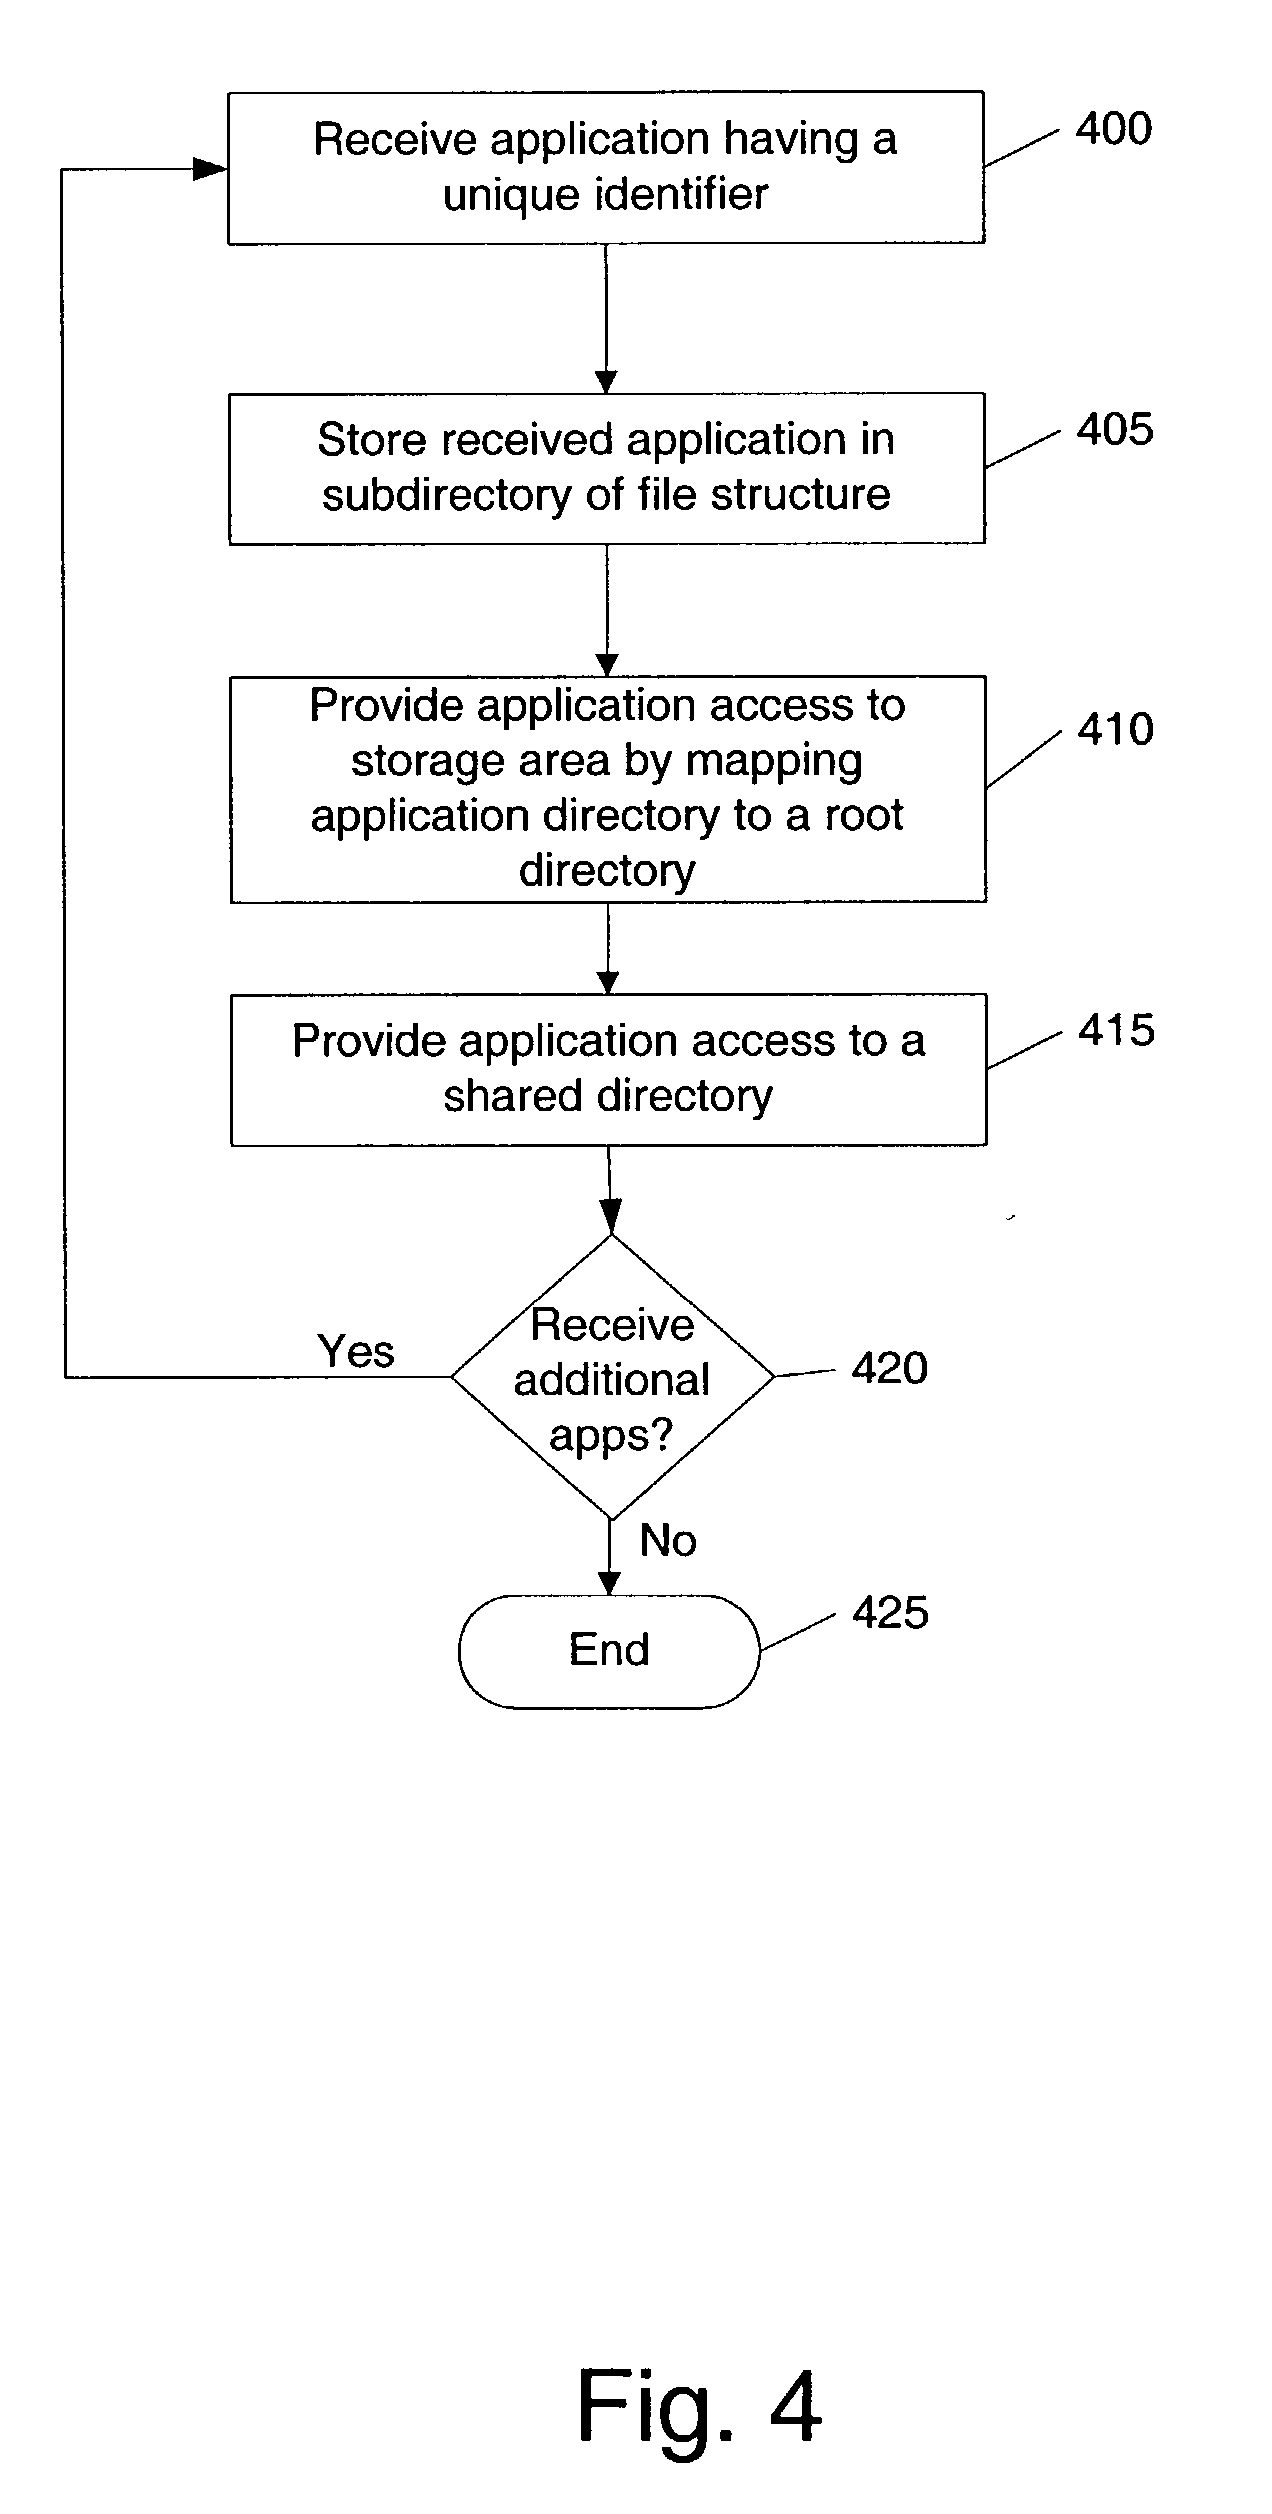 application of computer in any area Problem to be solved: to provide a method for limiting access to a storage area on a device relative to an application solution: the method includes steps of a receiving means of the device receiving an application through a network a directory forming means of the device forming, upon receipt of the application, a specific sub.